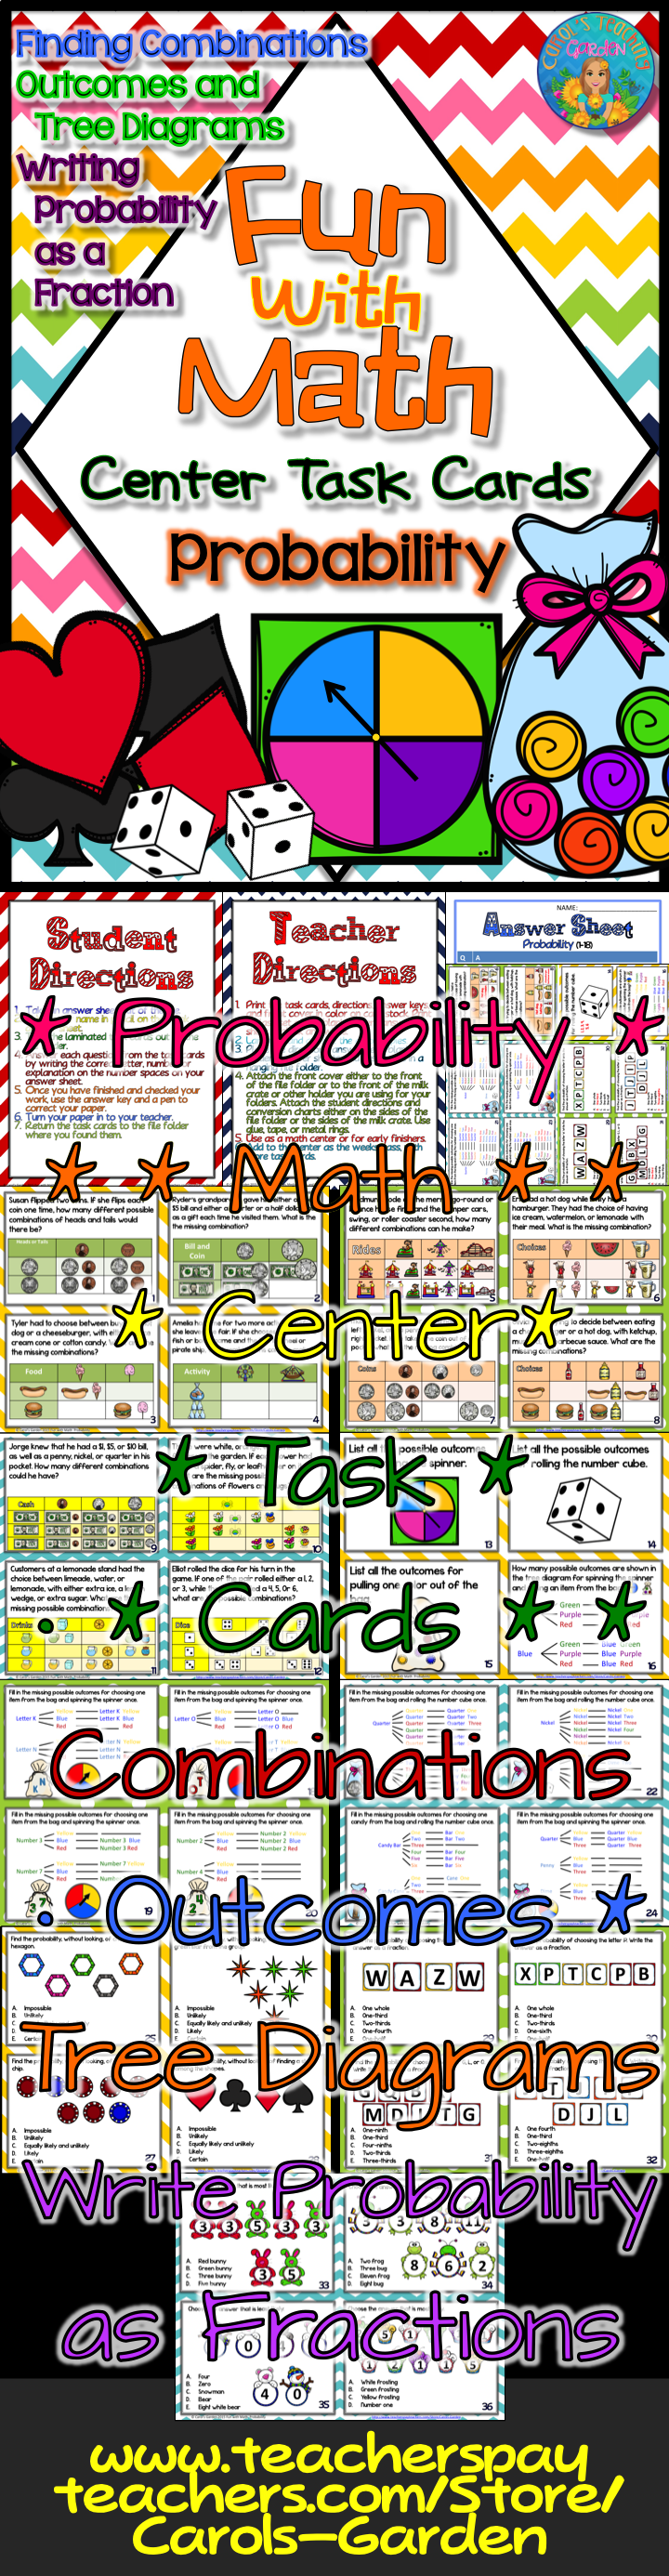 medium resolution of Fun With Math Probability Task Cards   Teaching math